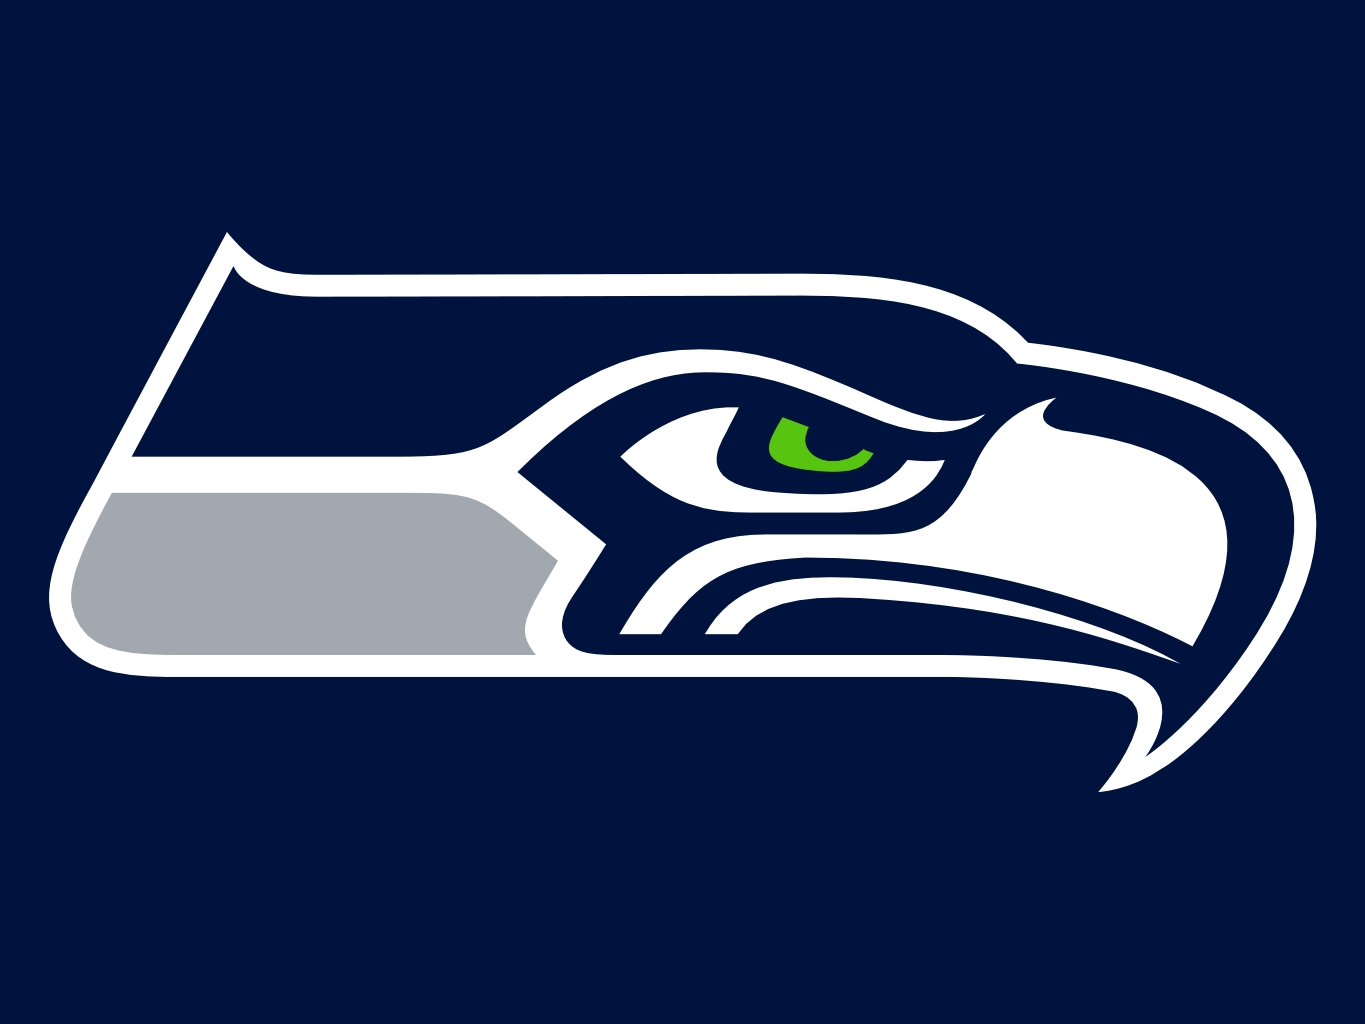 http://thebeastbrief.com/wp-content/uploads/Seattle_Seahawks.jpg